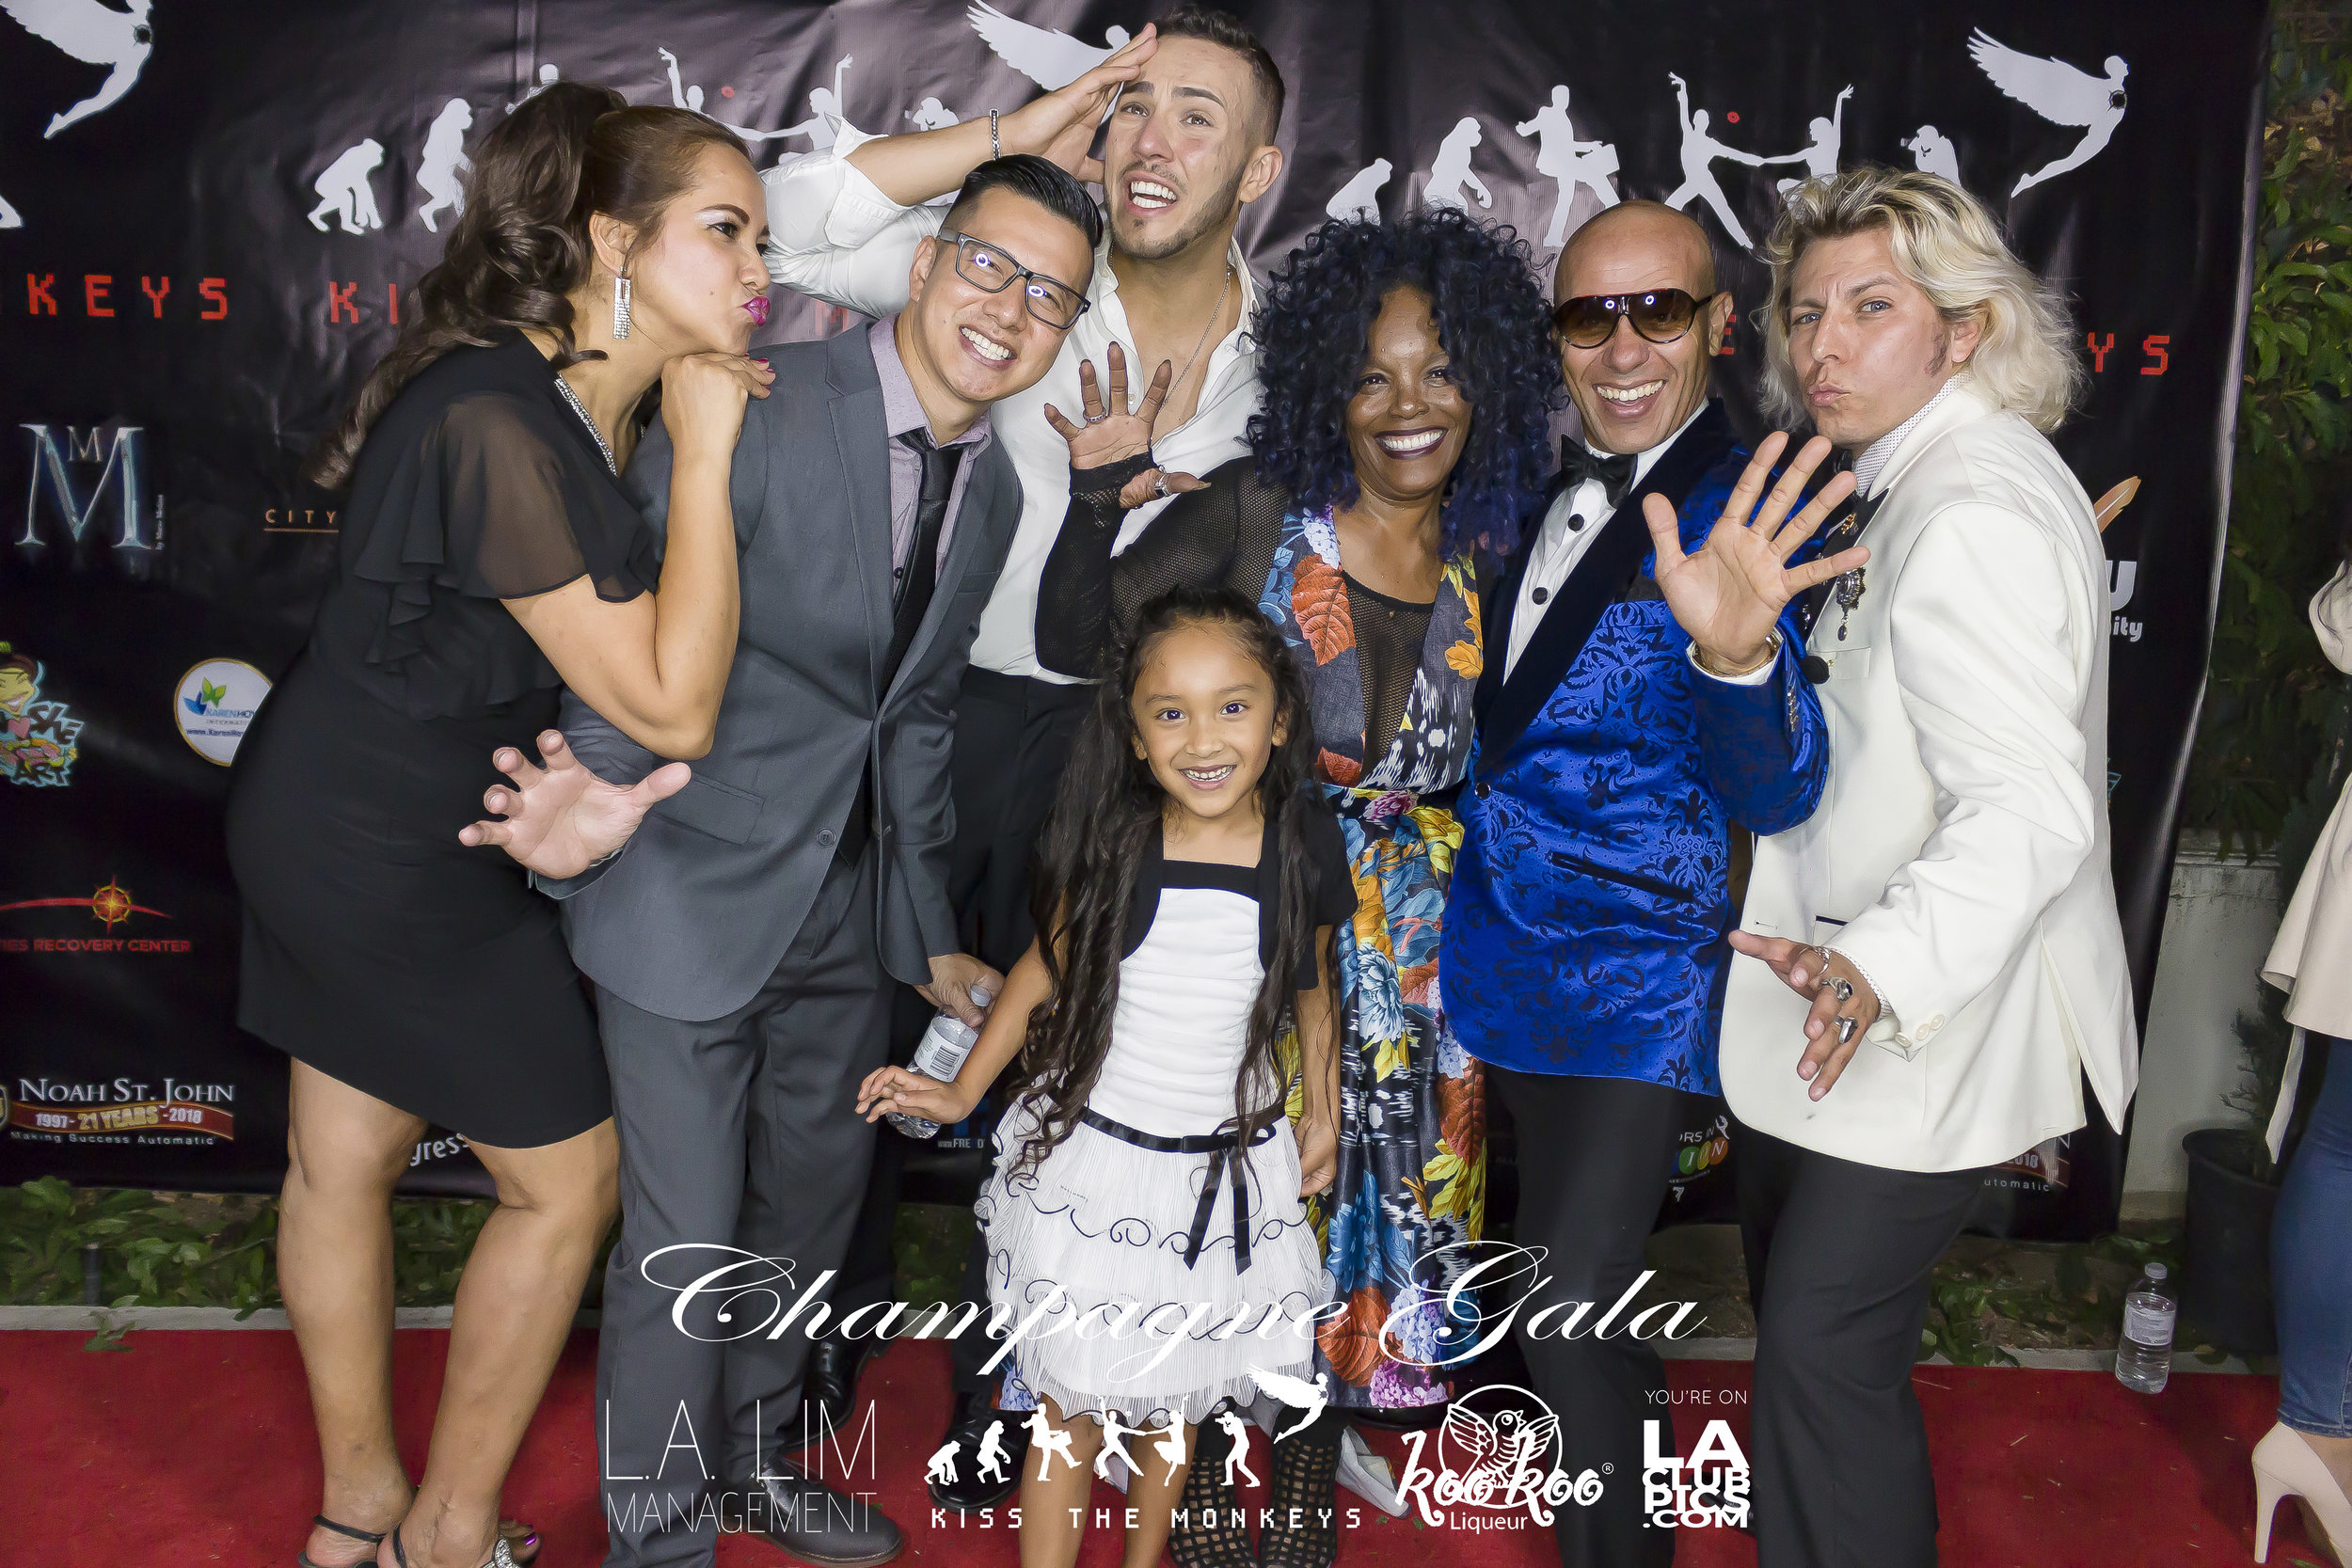 Kiss The Monkeys - Champagne Gala - 07-21-18_164.jpg